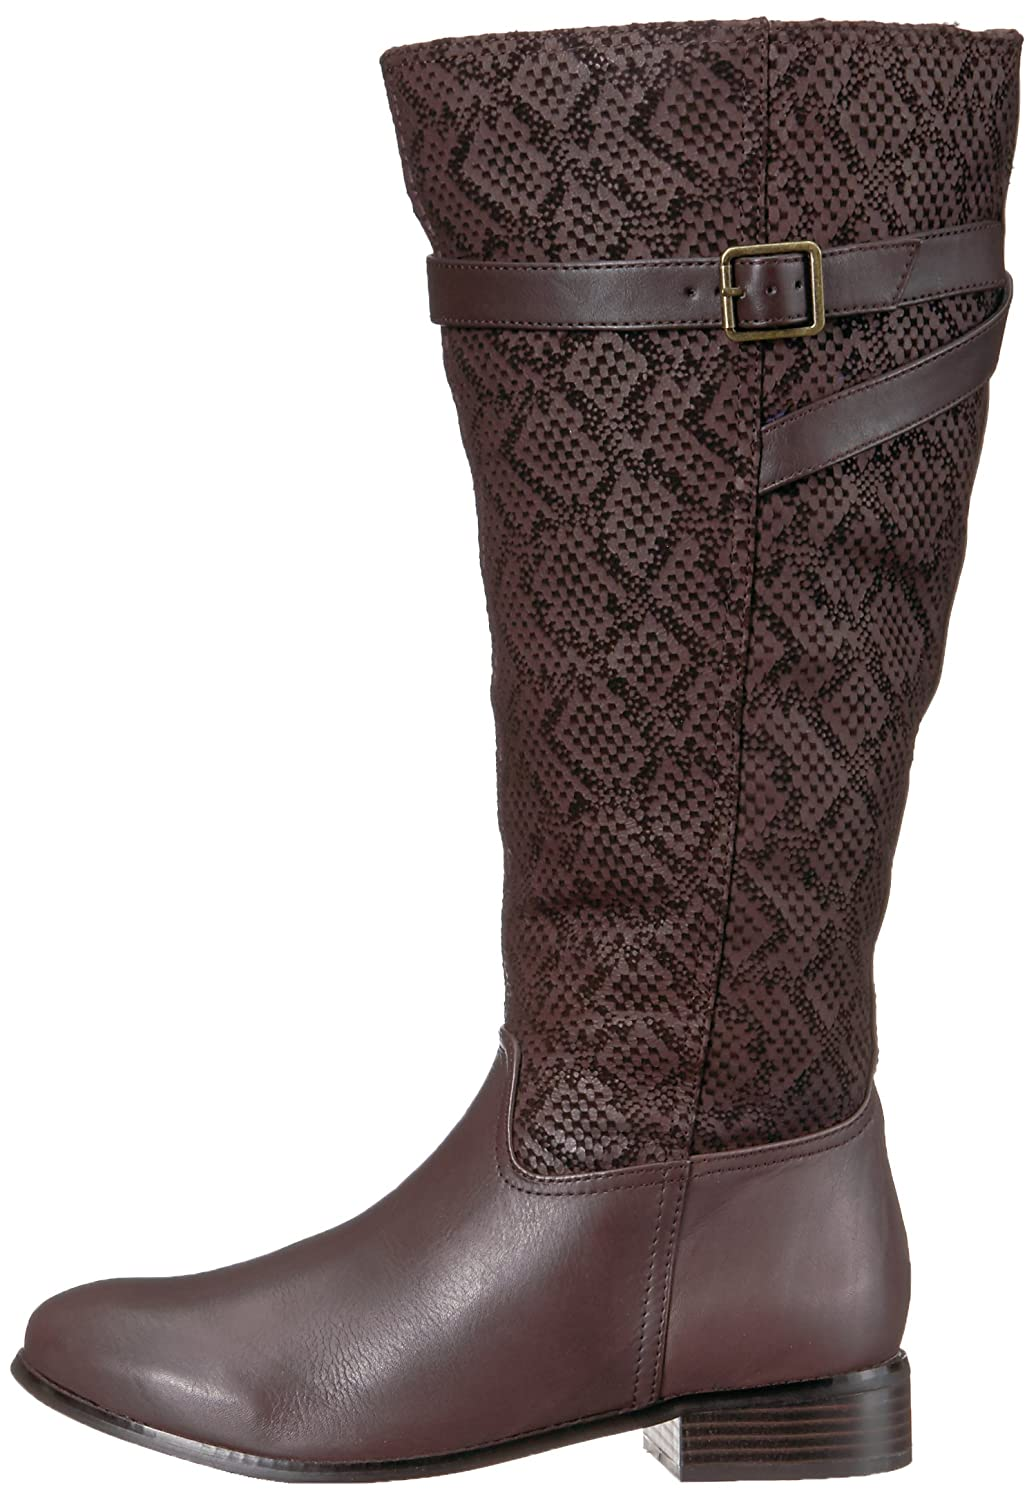 f72b8c4a6719 Trotters Women s Lyra Wide Calf Riding Boot  Buy Online at Low Prices in  India - Amazon.in